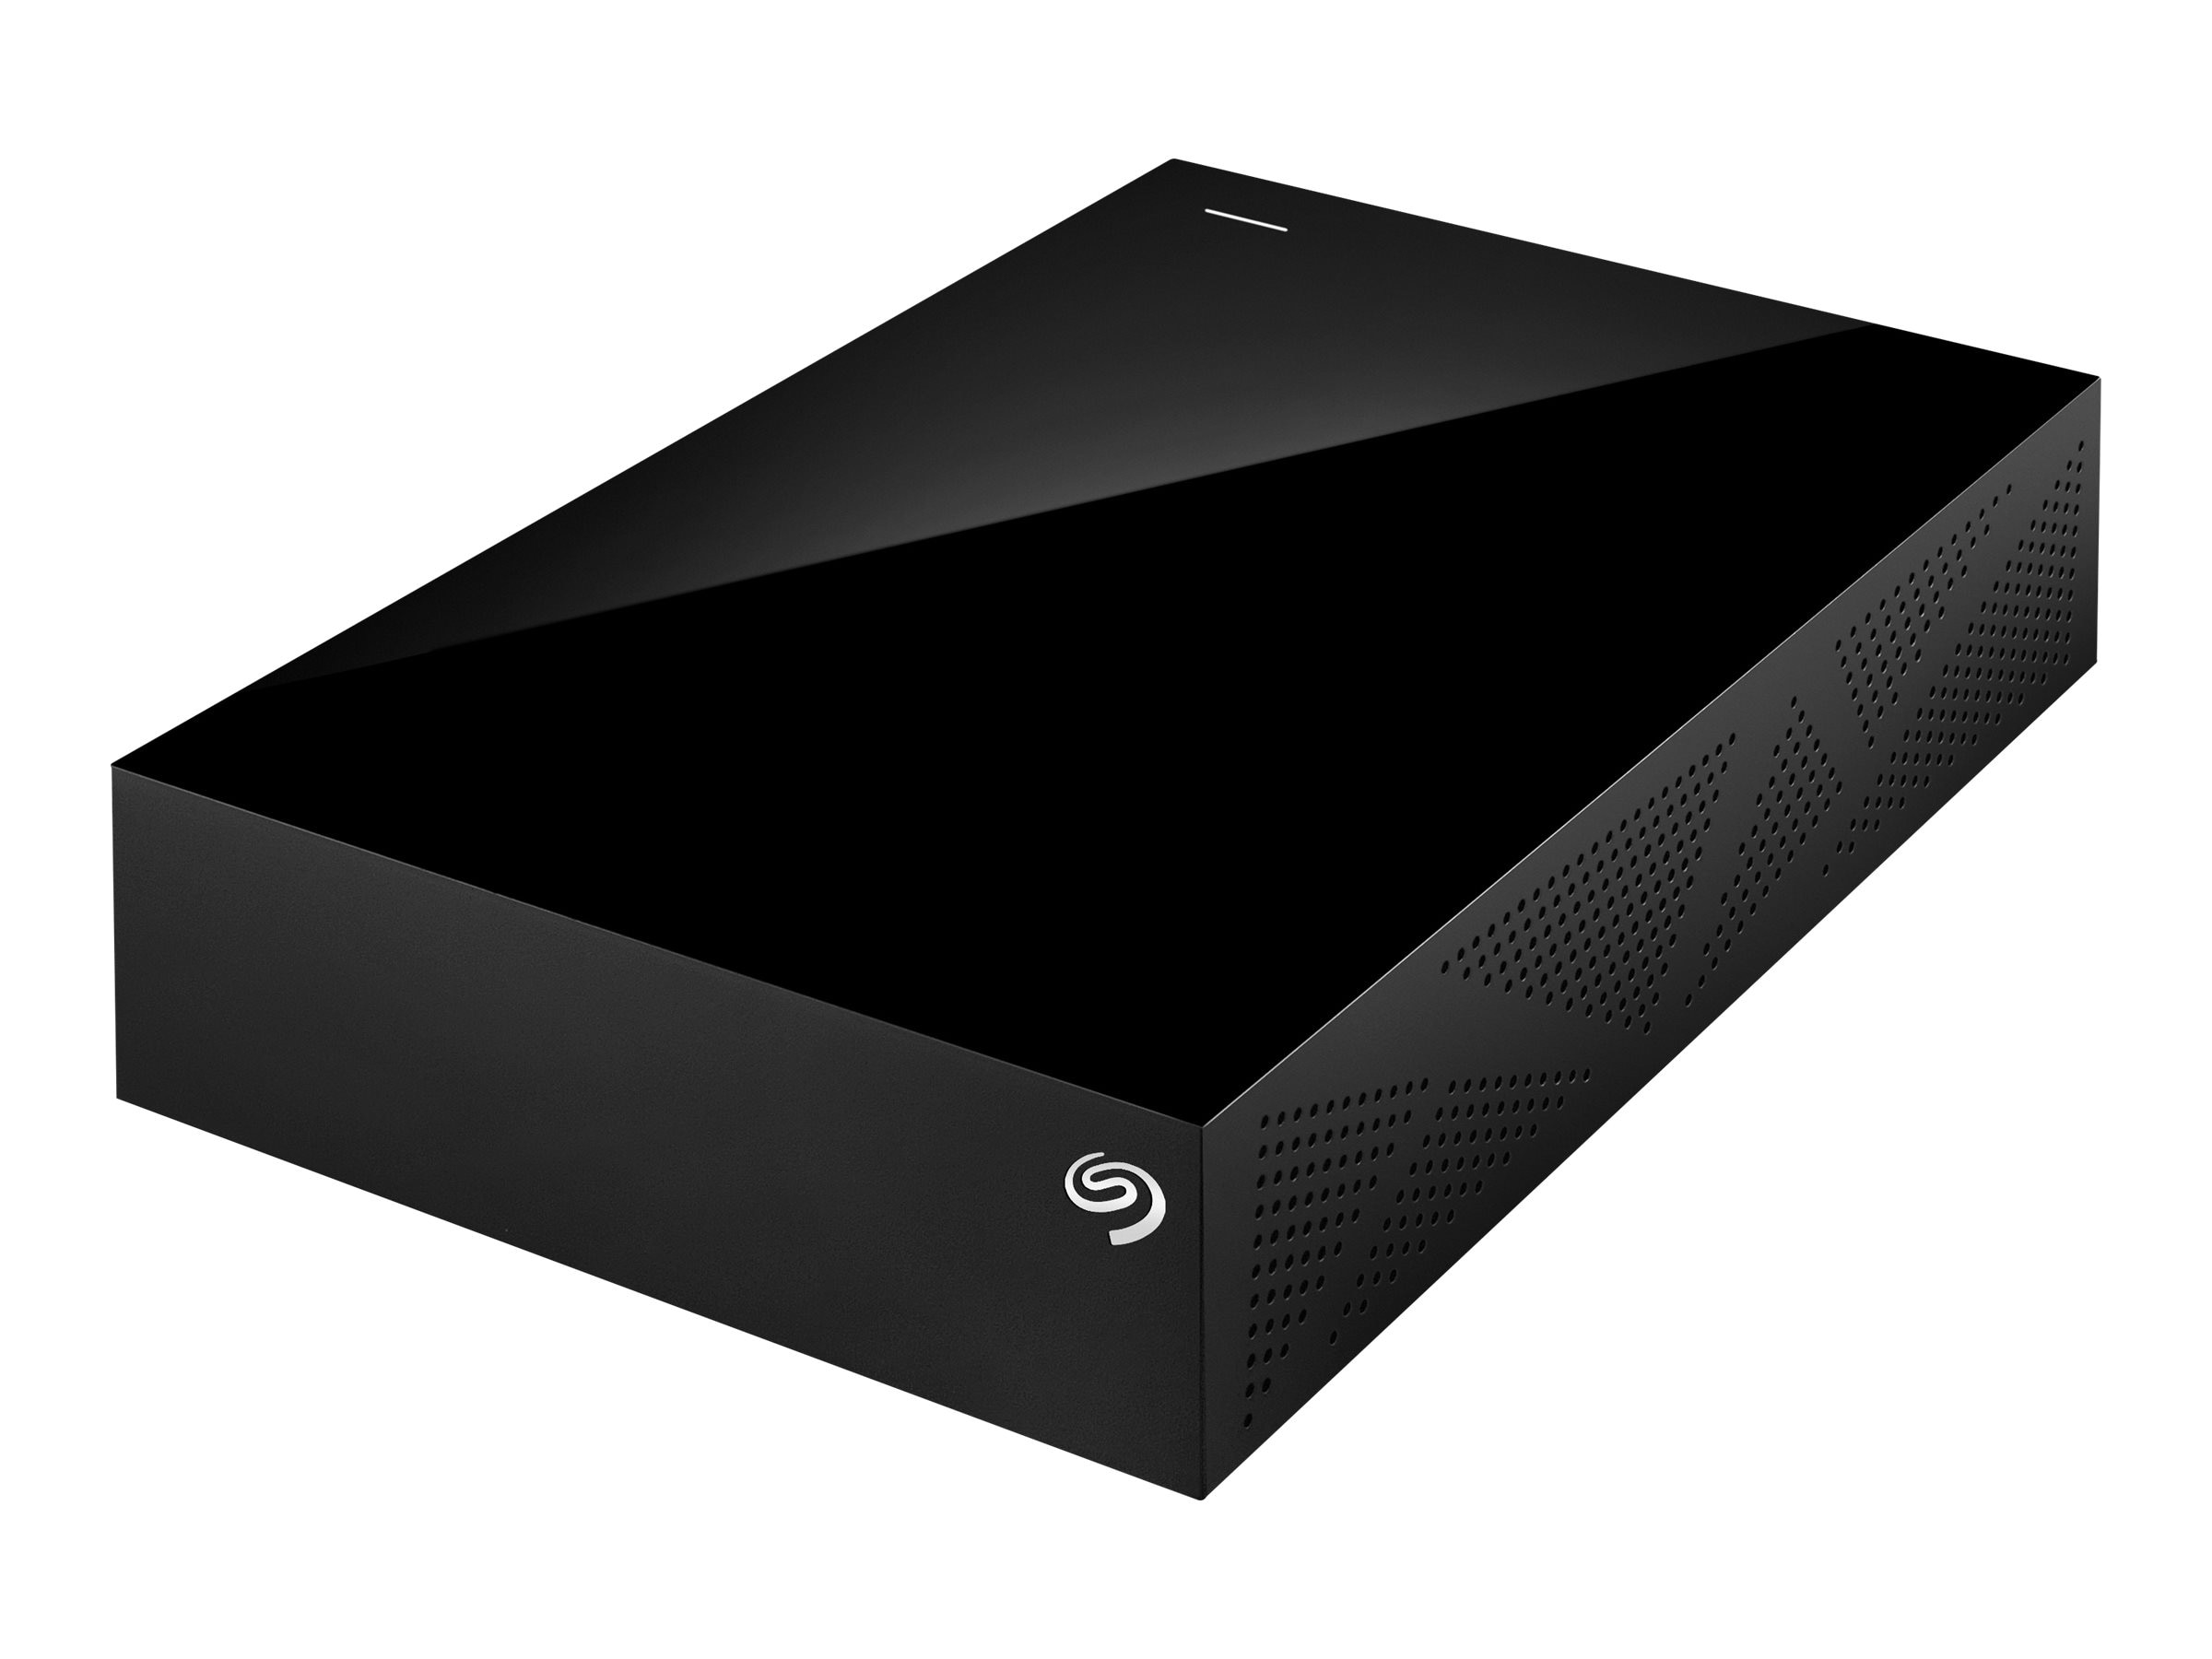 Seagate 4TB Backup Plus USB 3.0 3.5 Desktop Hard Drive - Tuxedo Black, STDT4000100, 16654754, Hard Drives - External